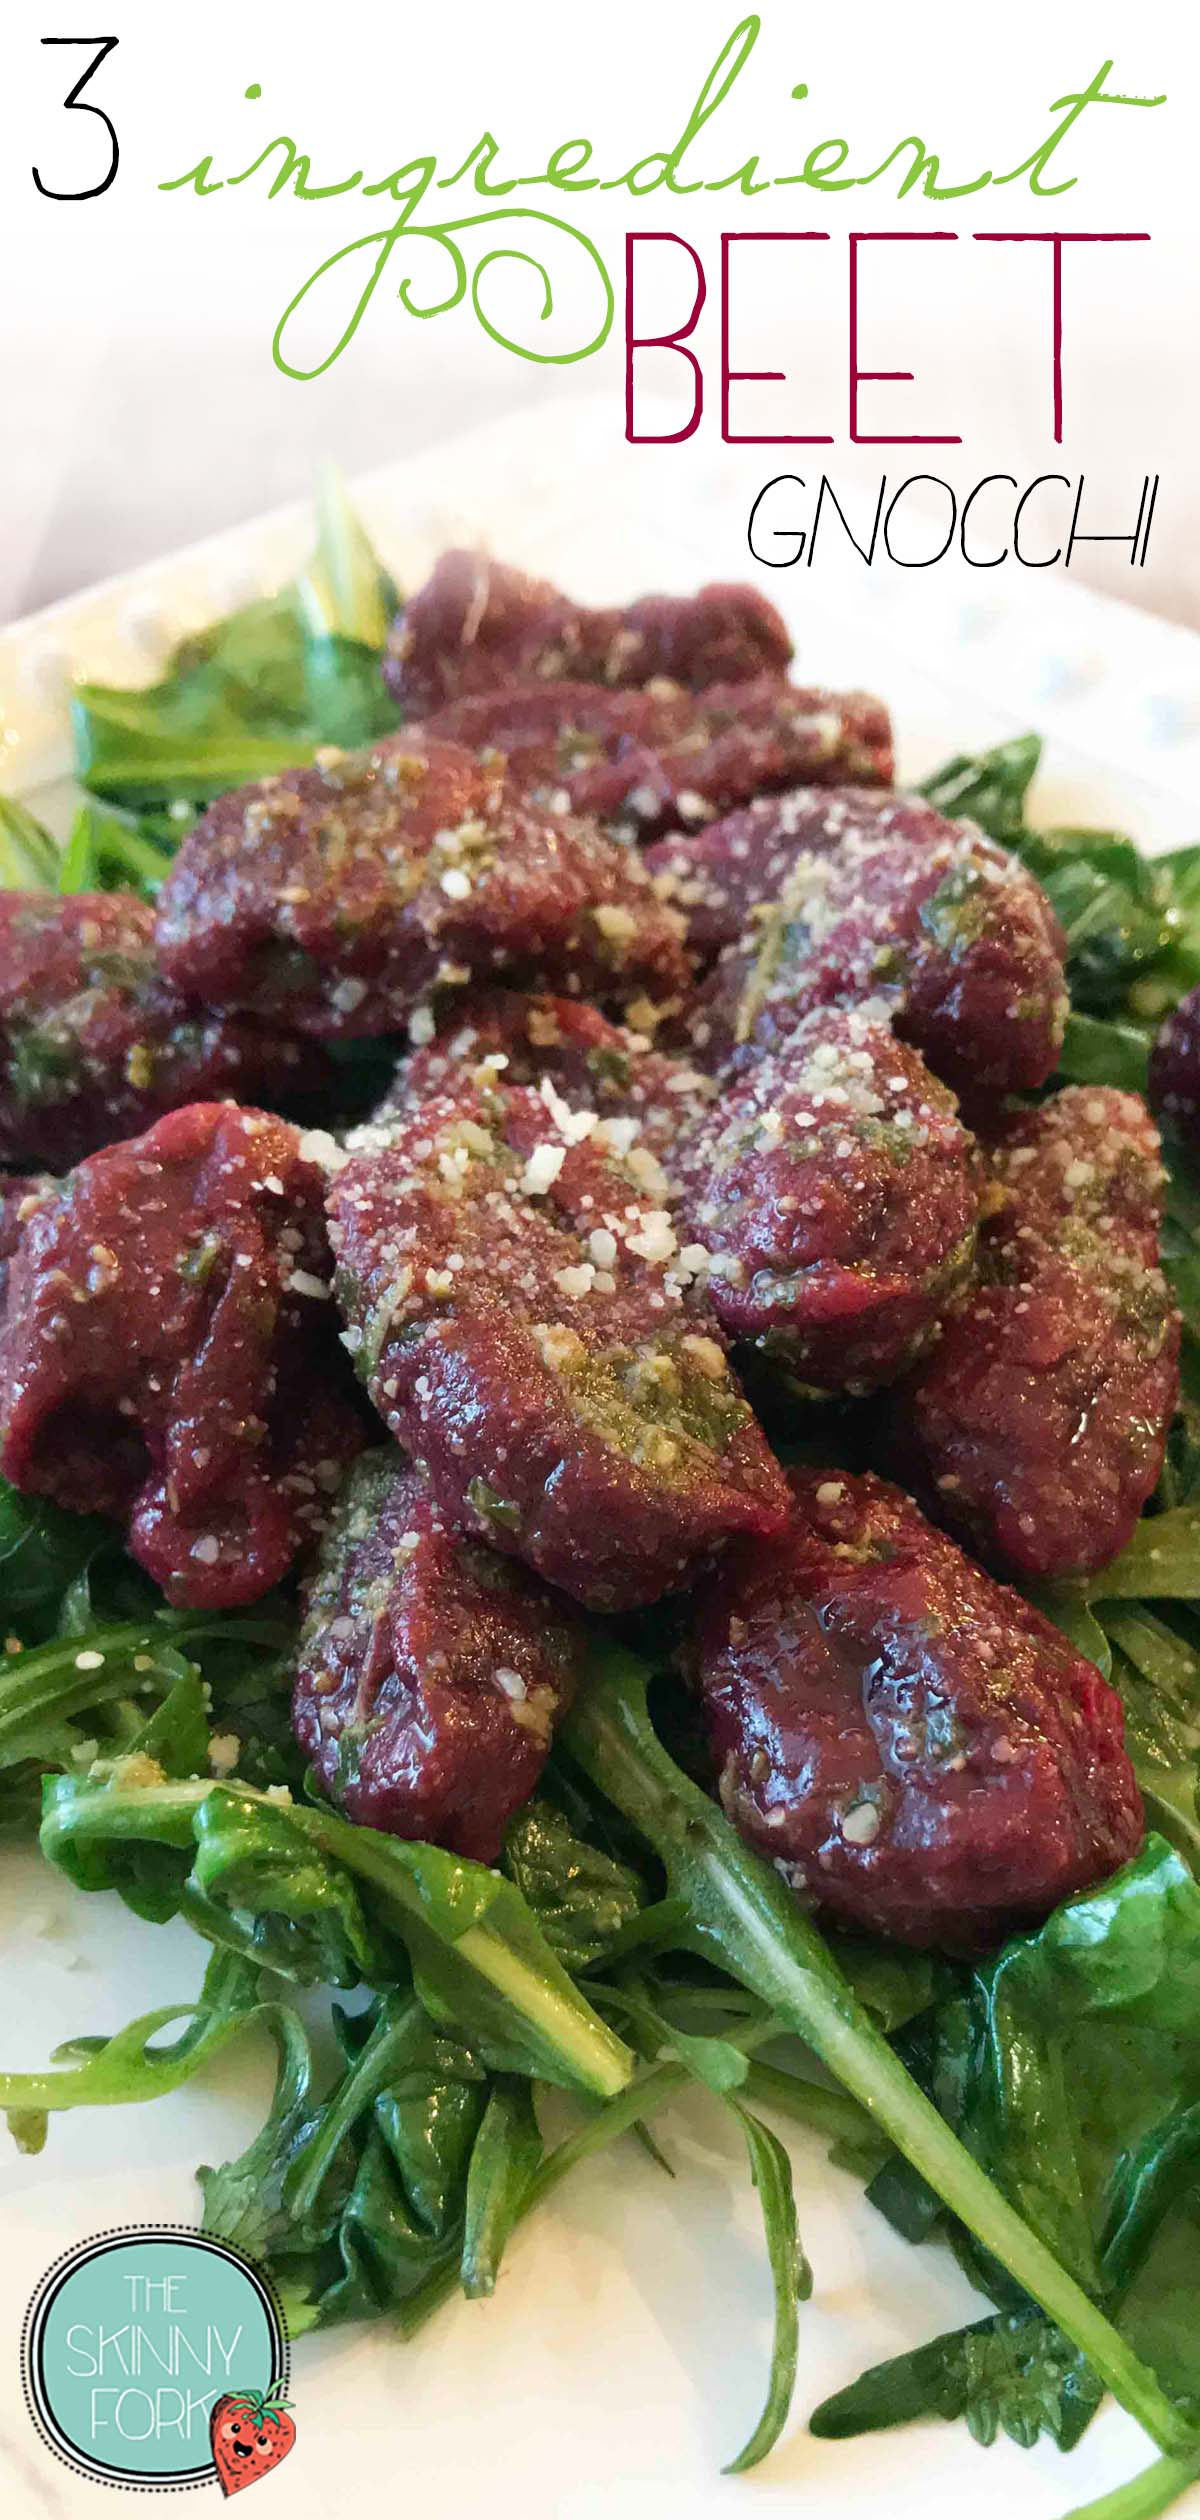 3 Ingredient Beet Gnocchi